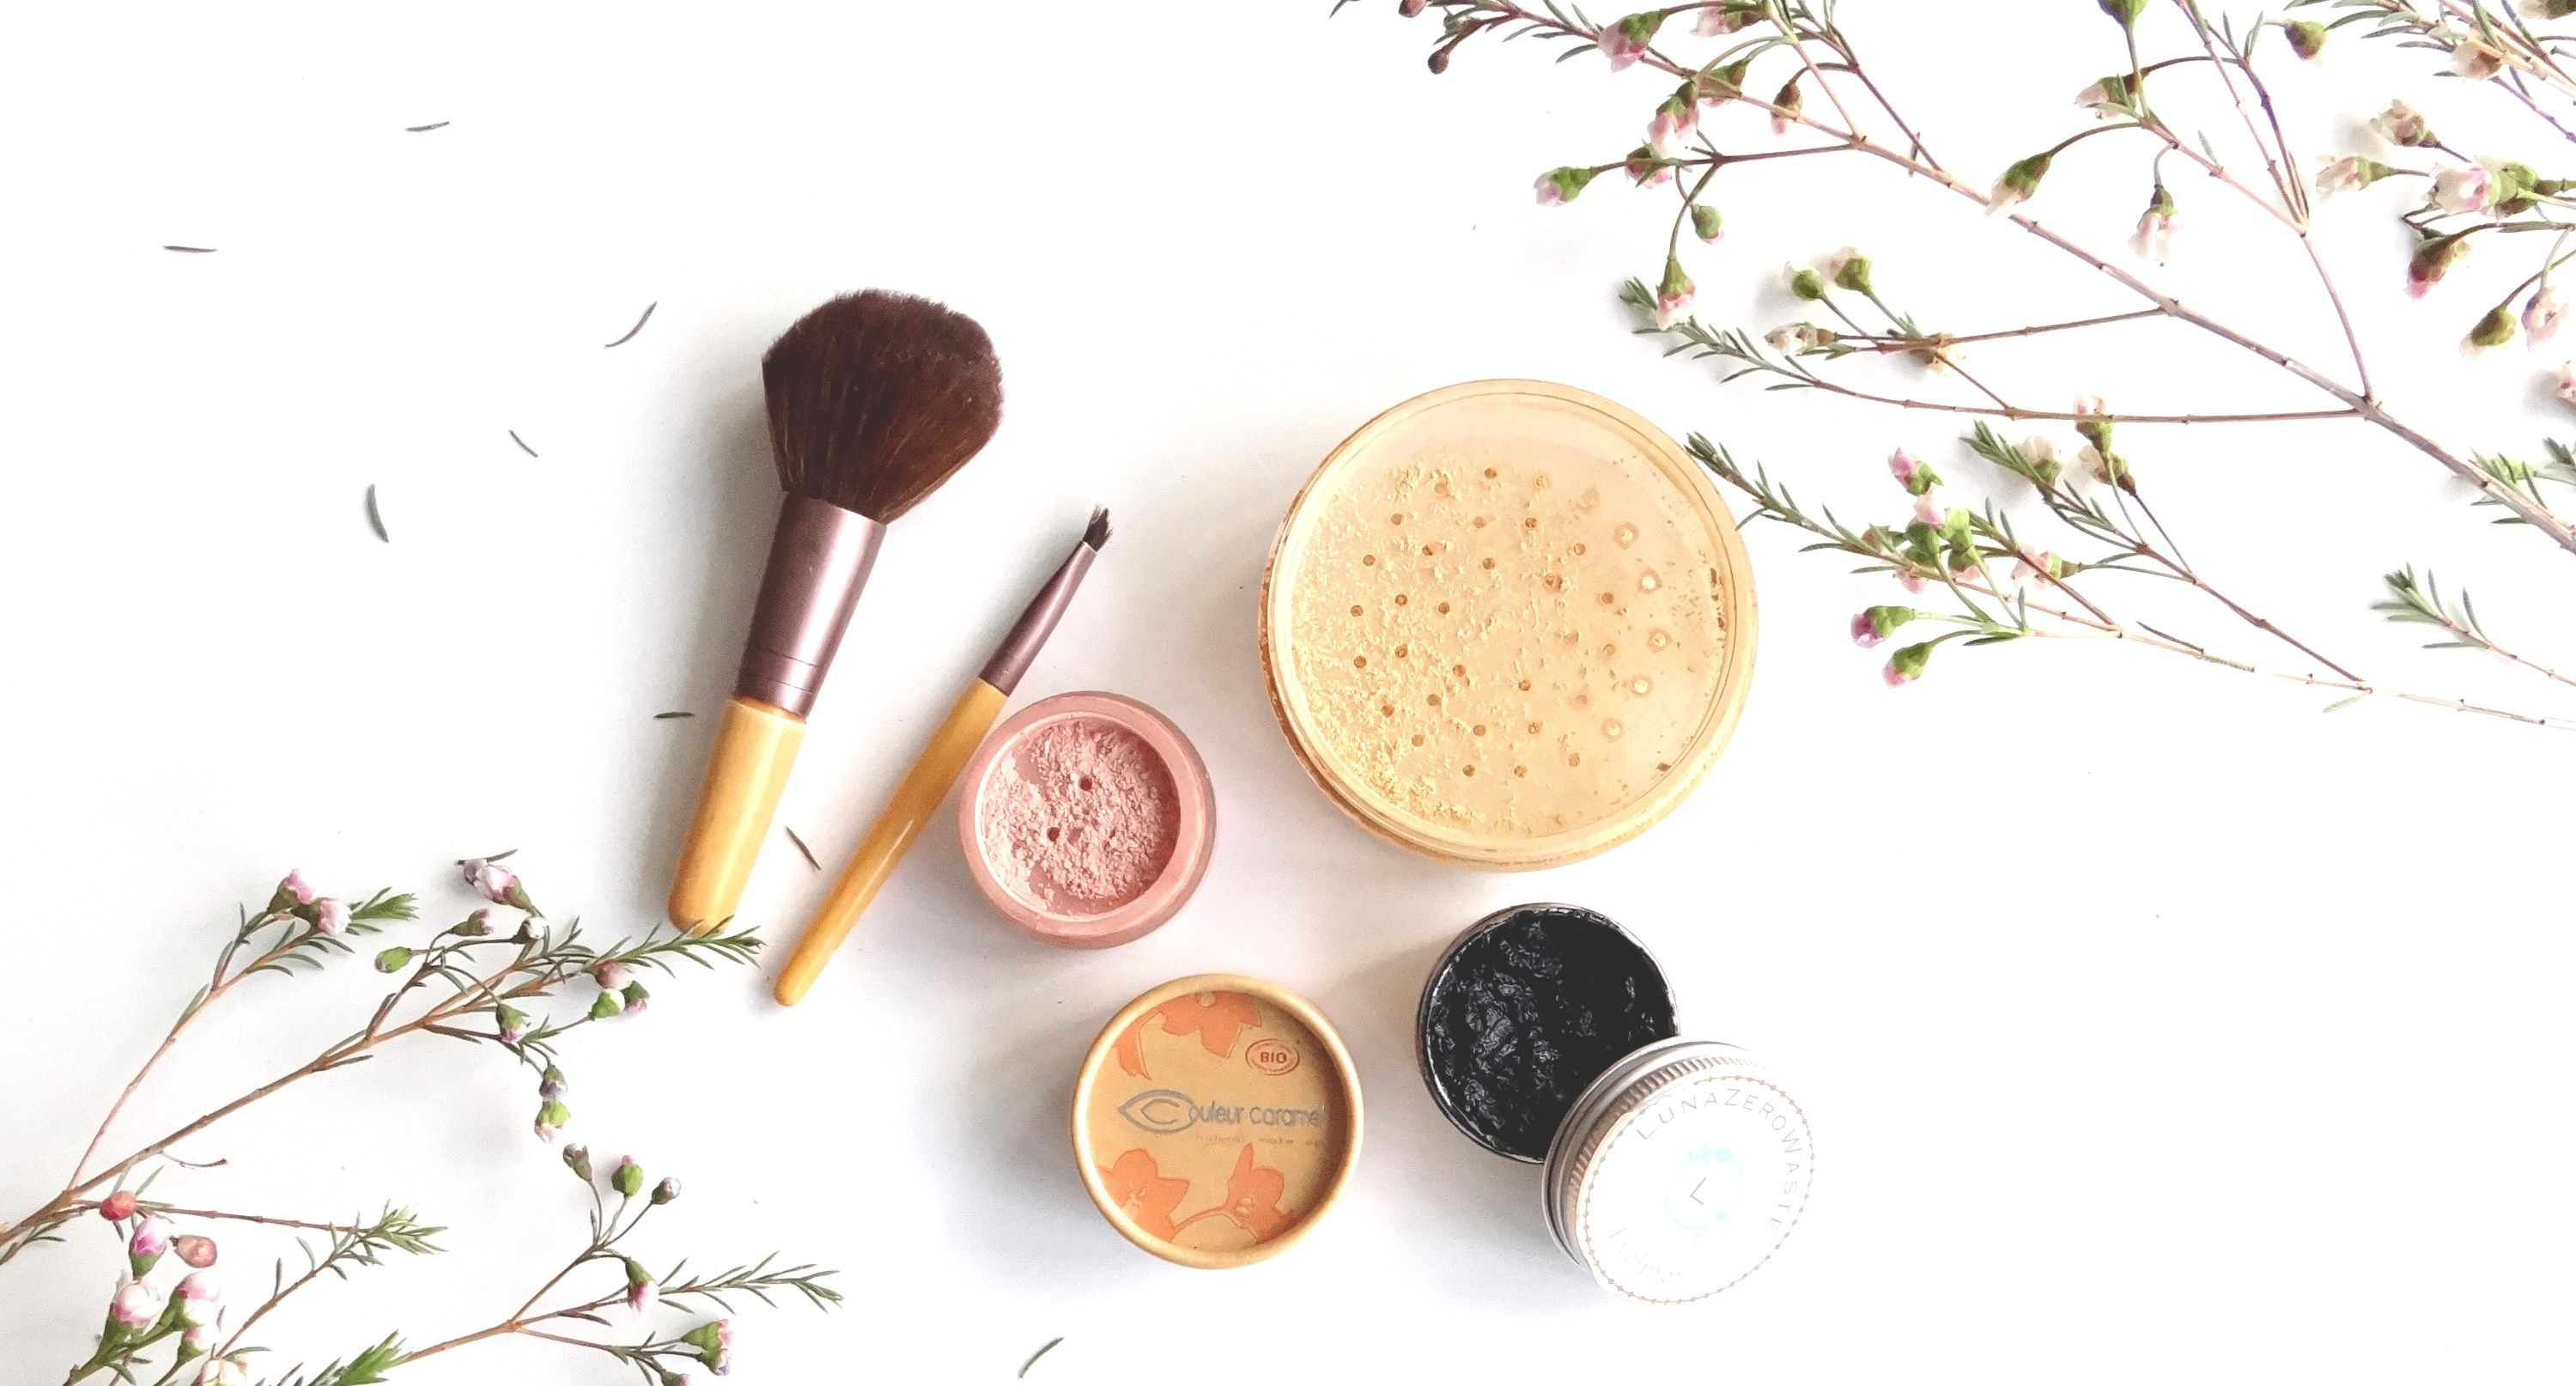 13 Zero Waste(ish) Makeup Brands (With images) Zero